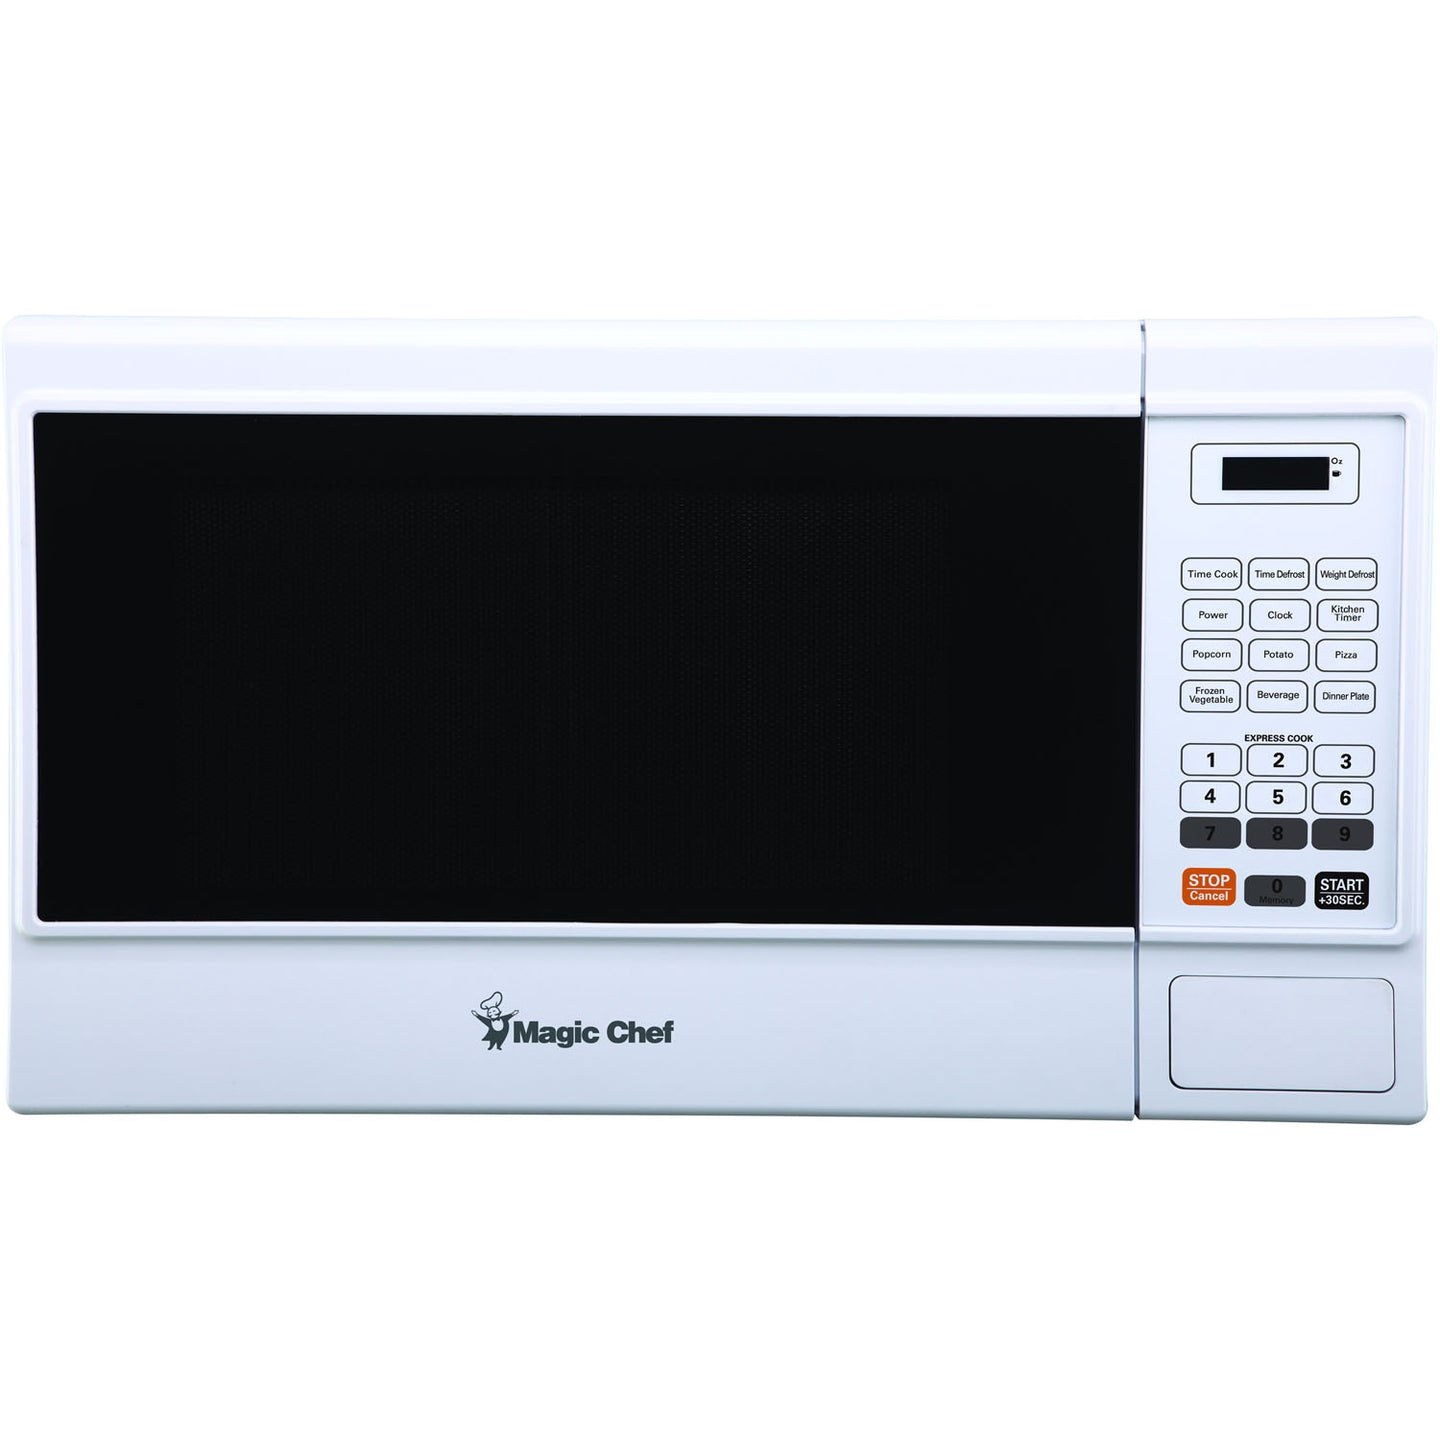 Magic Chef MCM1310W Countertop Microwave 1000W Digital Touch - White